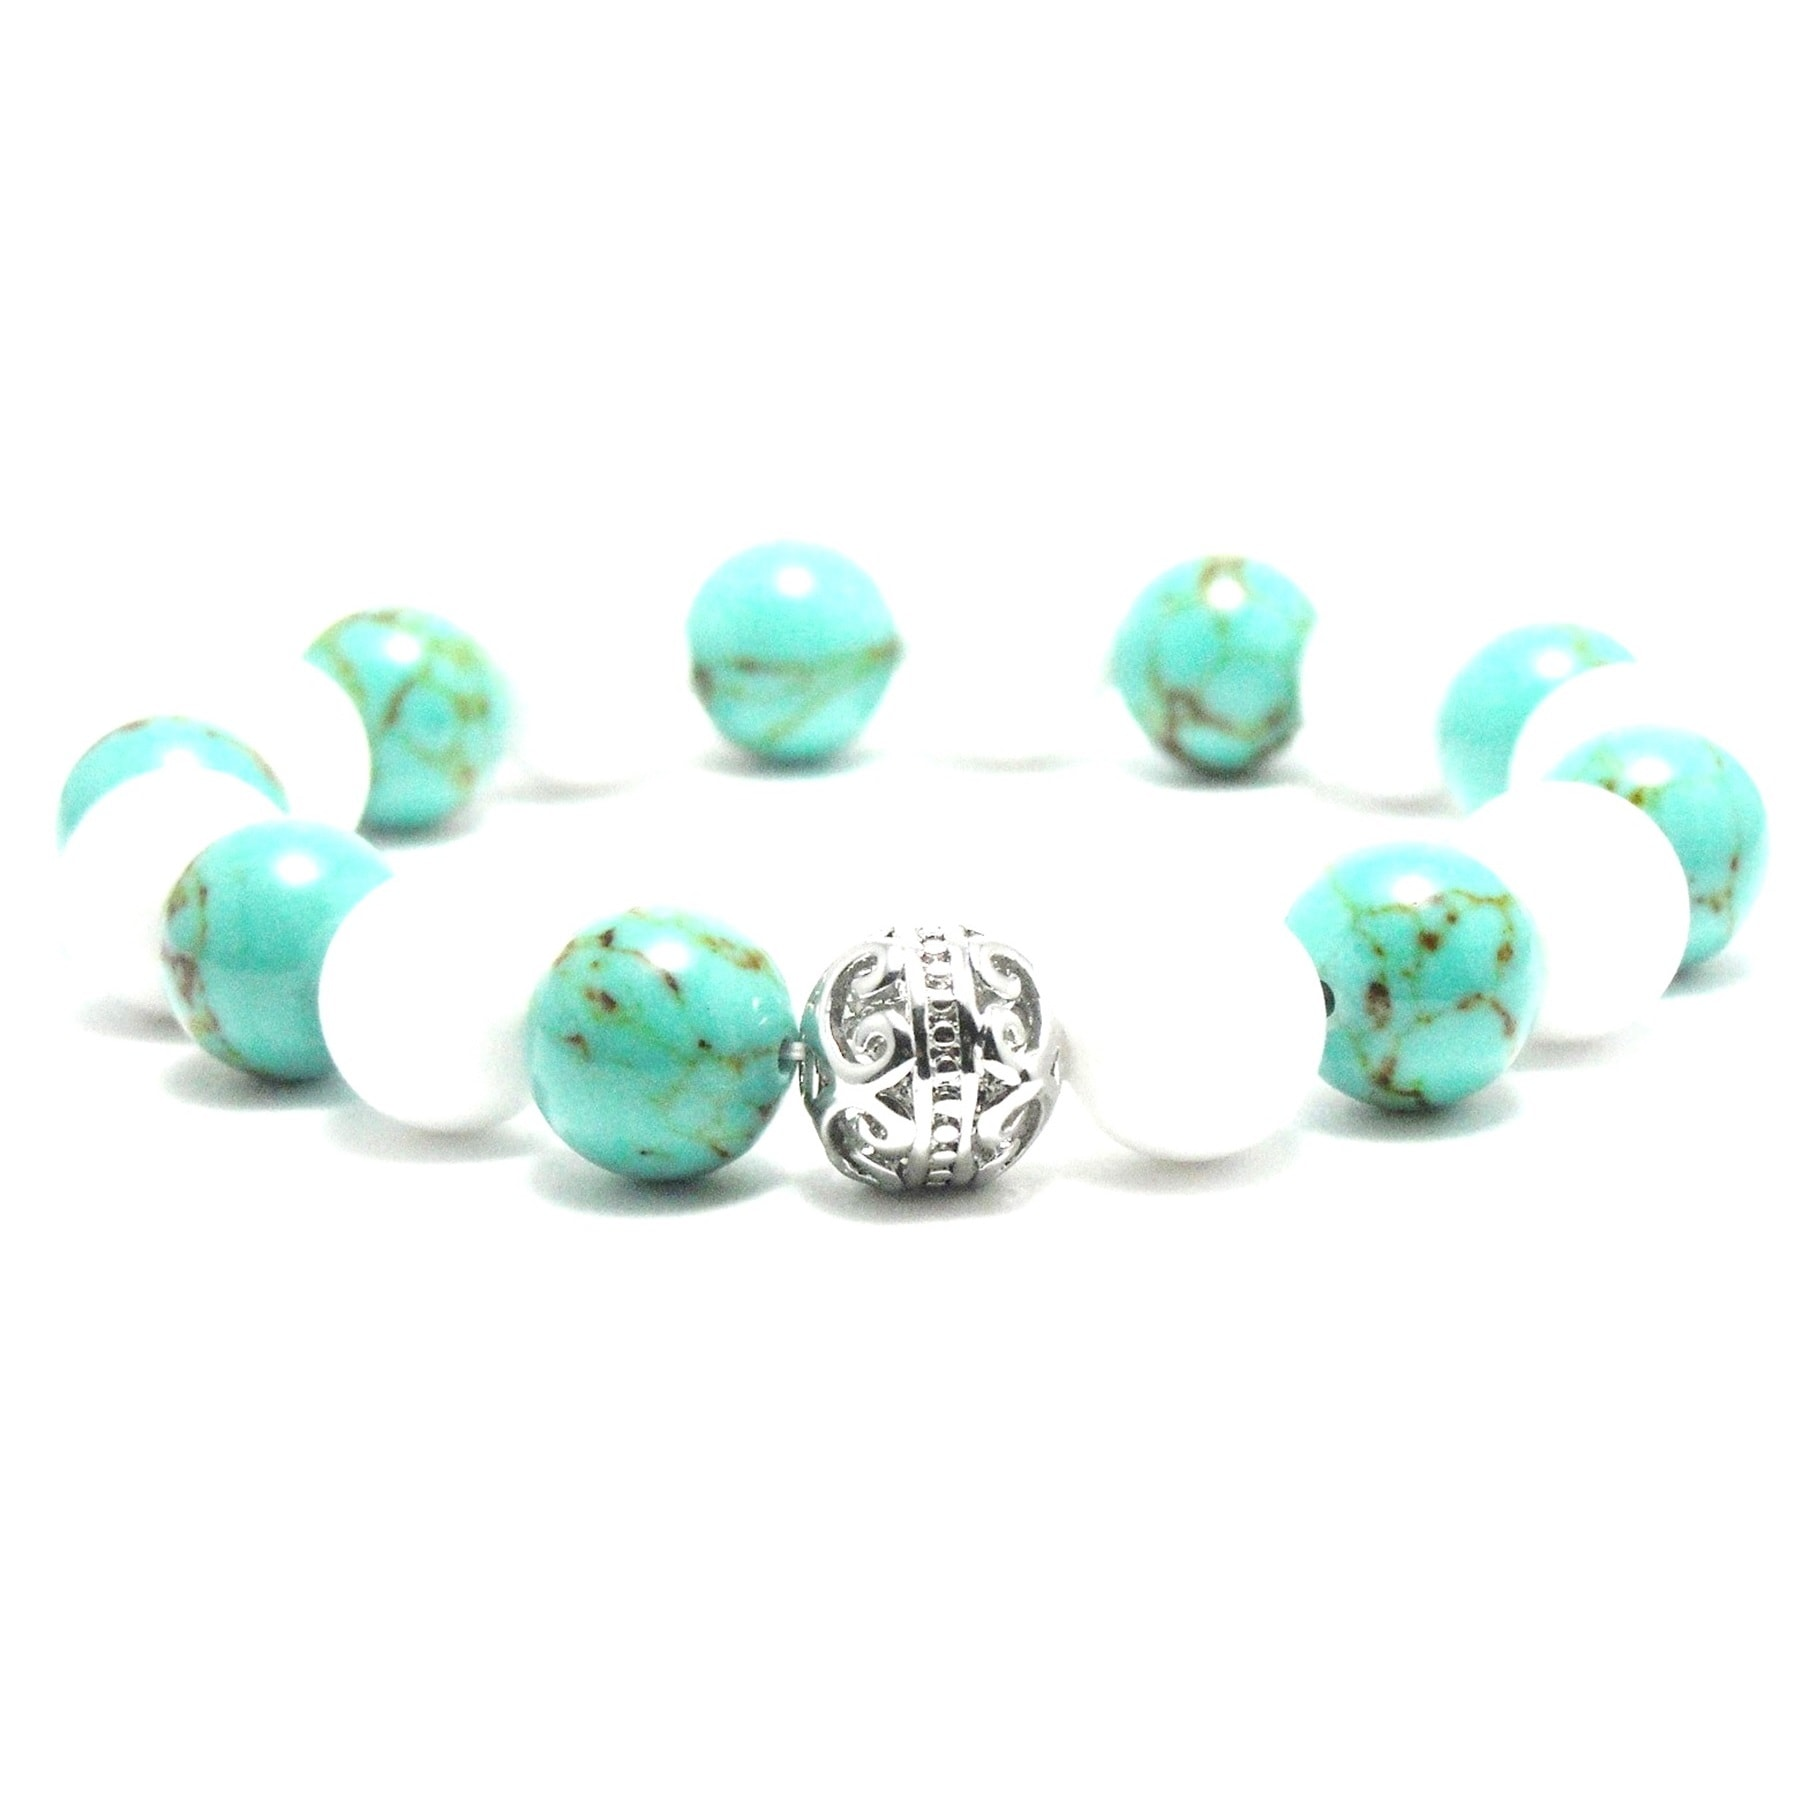 Aalilly Women's 10mm White and Black Turquoise Textured N...